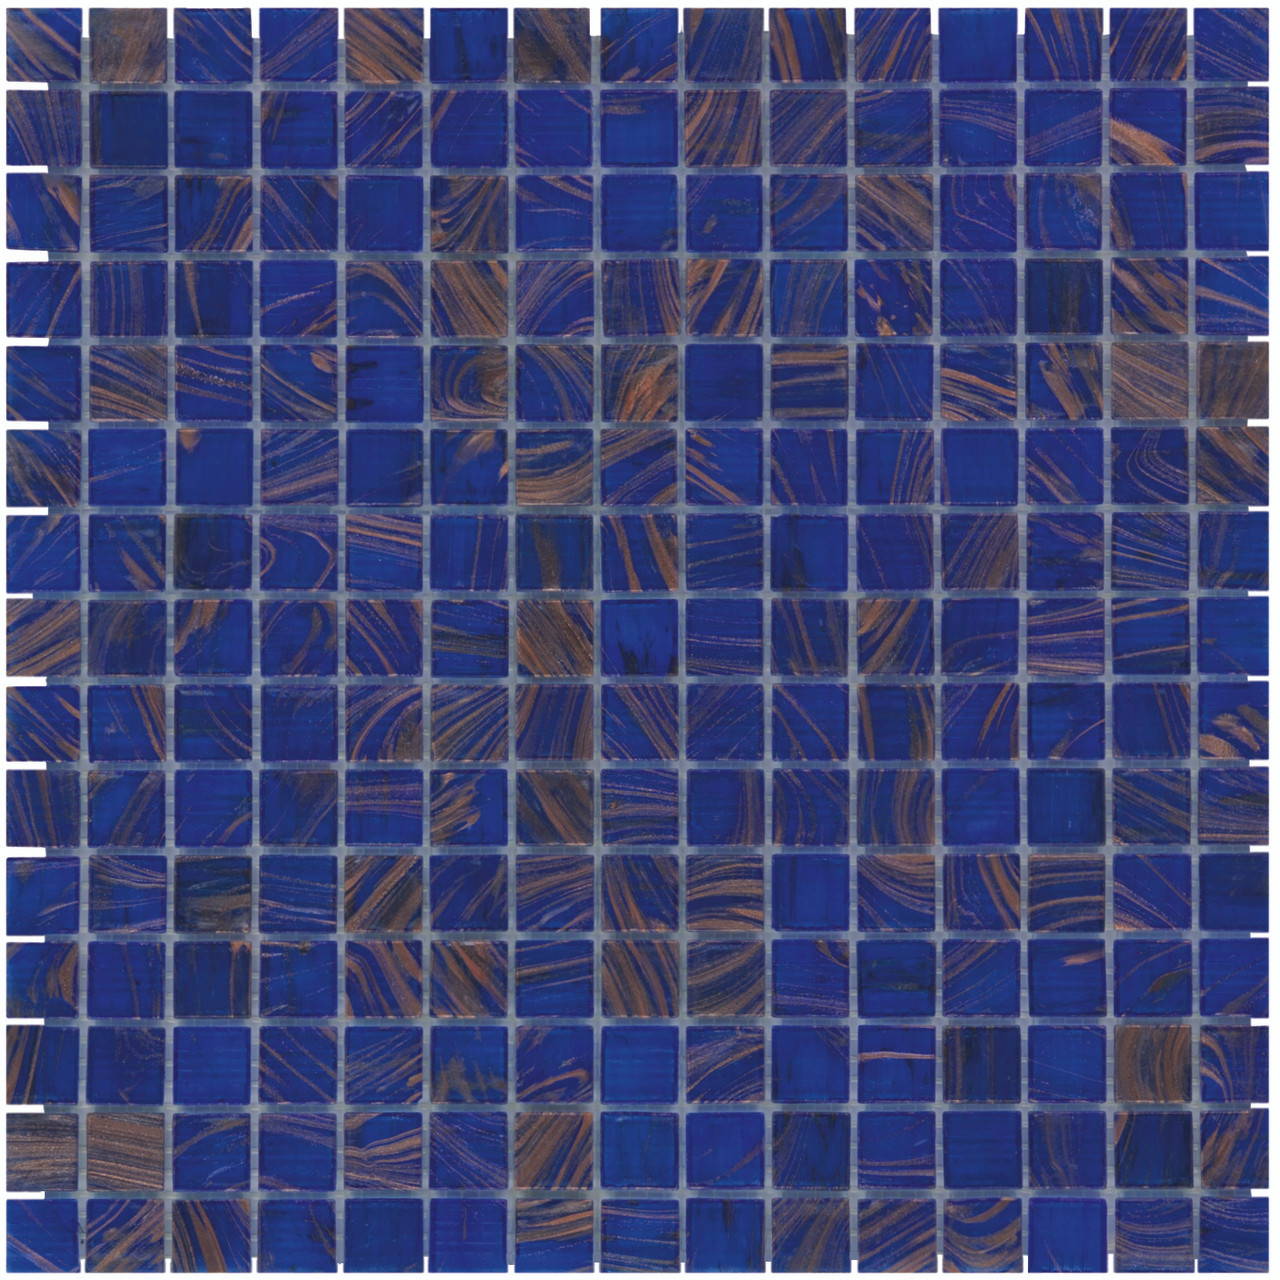 Quartz Glass Mosaic Tile Sheet Amsterdam Medium Blue Gold Dust, Box ...